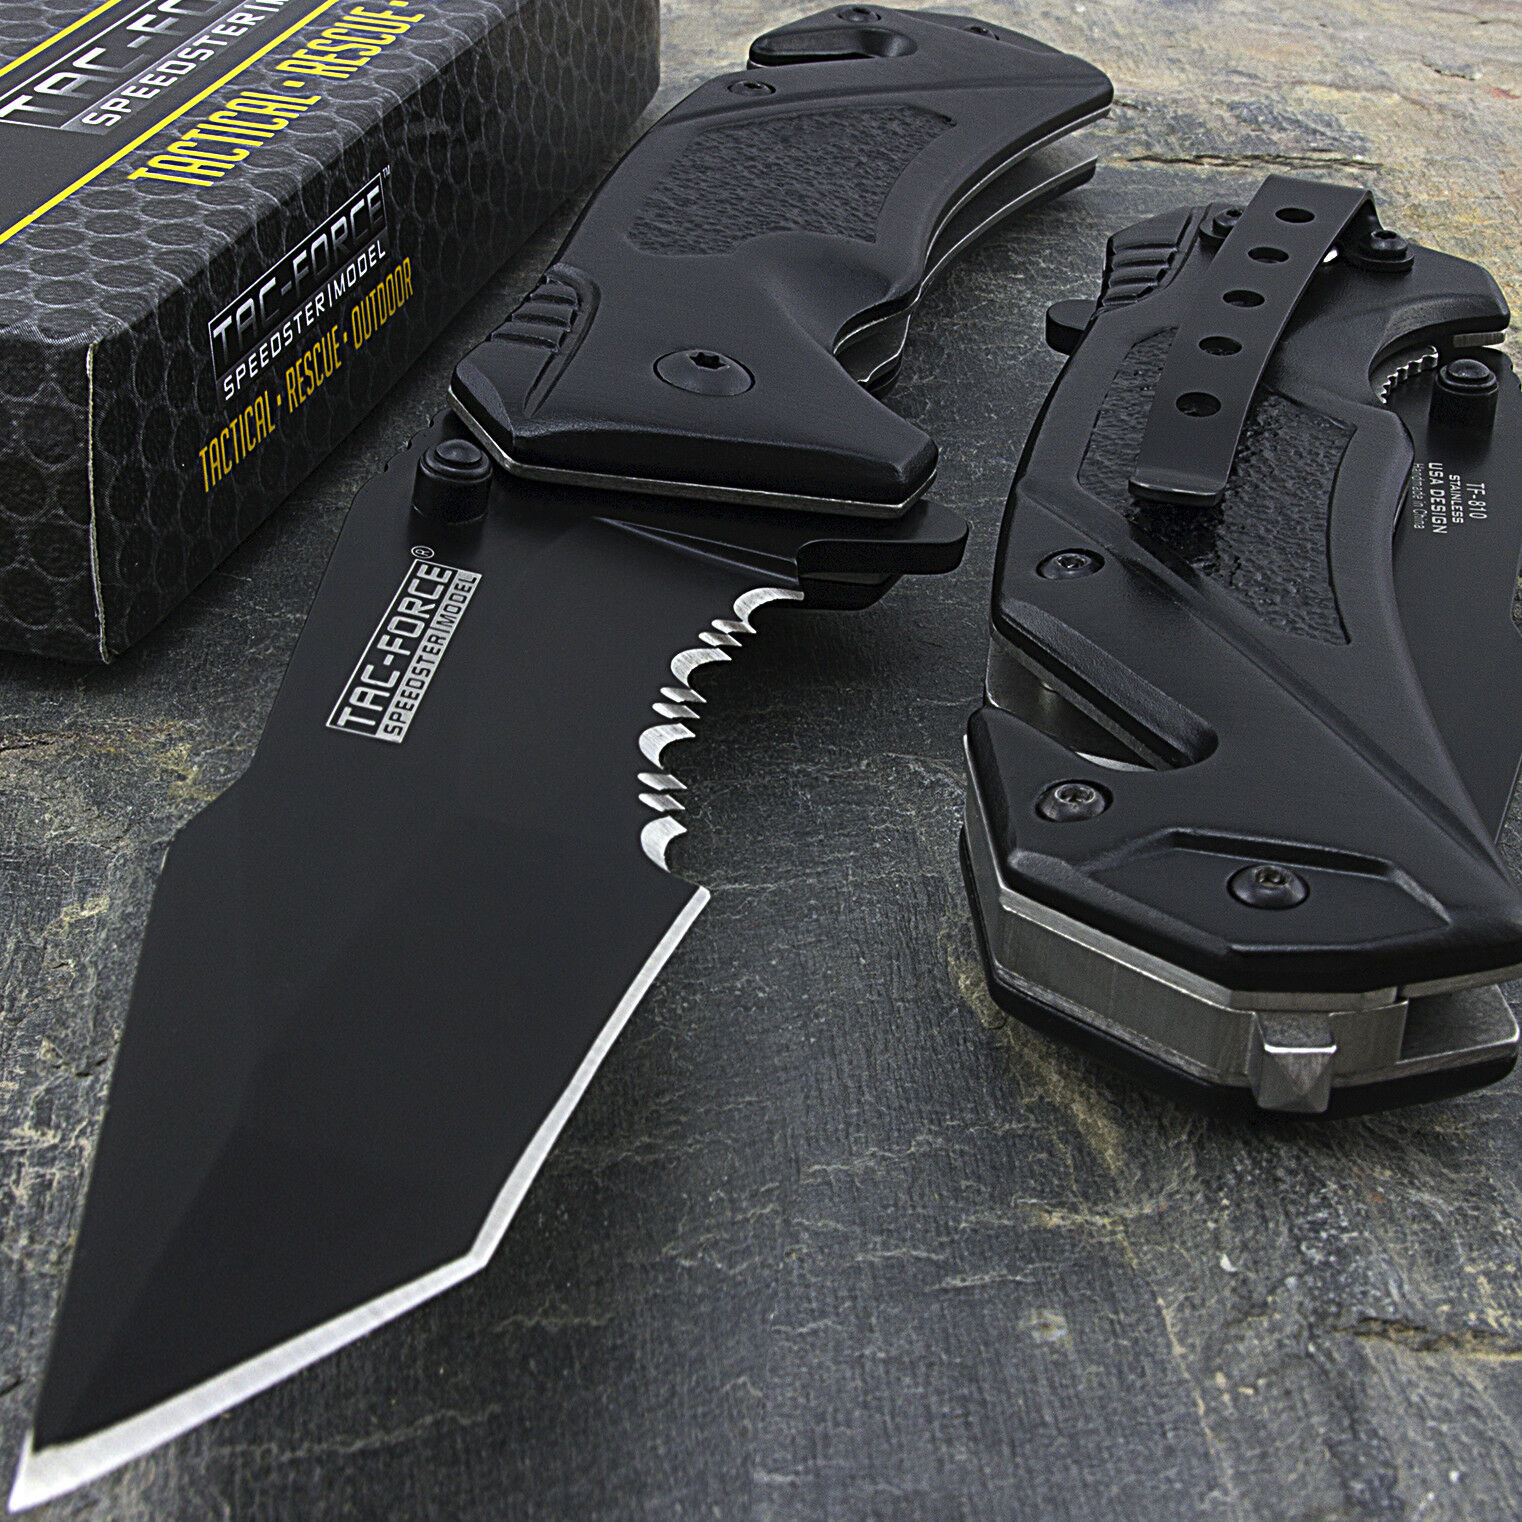 Купить Tac-Force - 8.25 TAC FORCE TANTO SPRING ASSISTED TACTICAL FOLDING POCKET KNIFE Open Assist